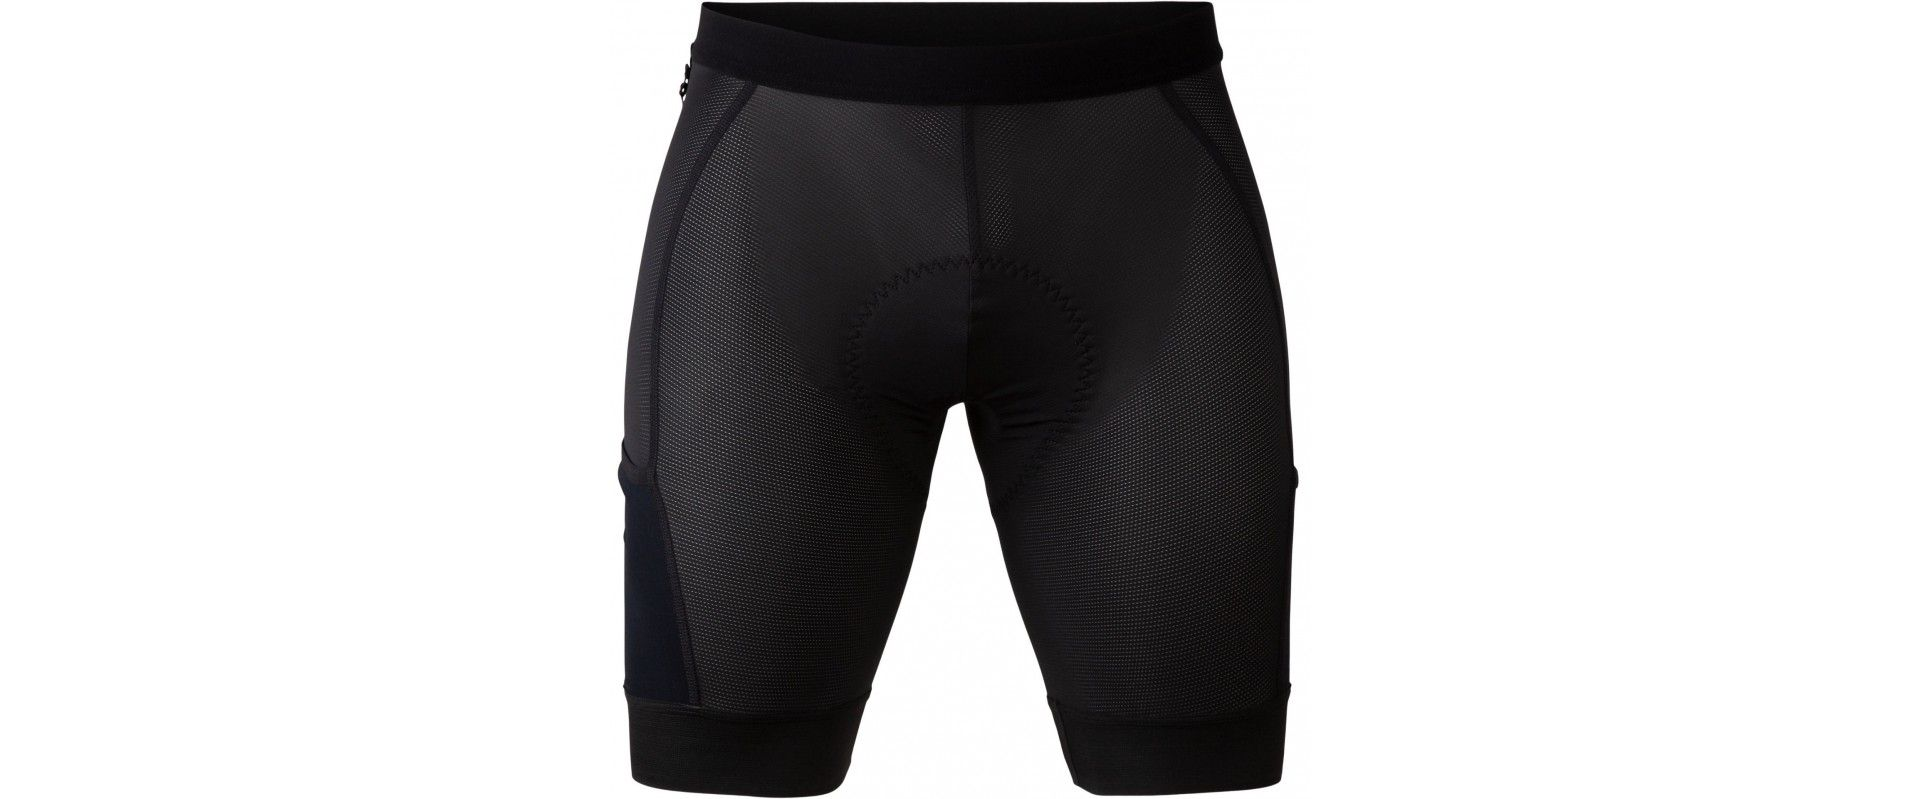 ♥ Culottes Cycling Pants ♥ Specialized Concept Store Bicycle Store and Components